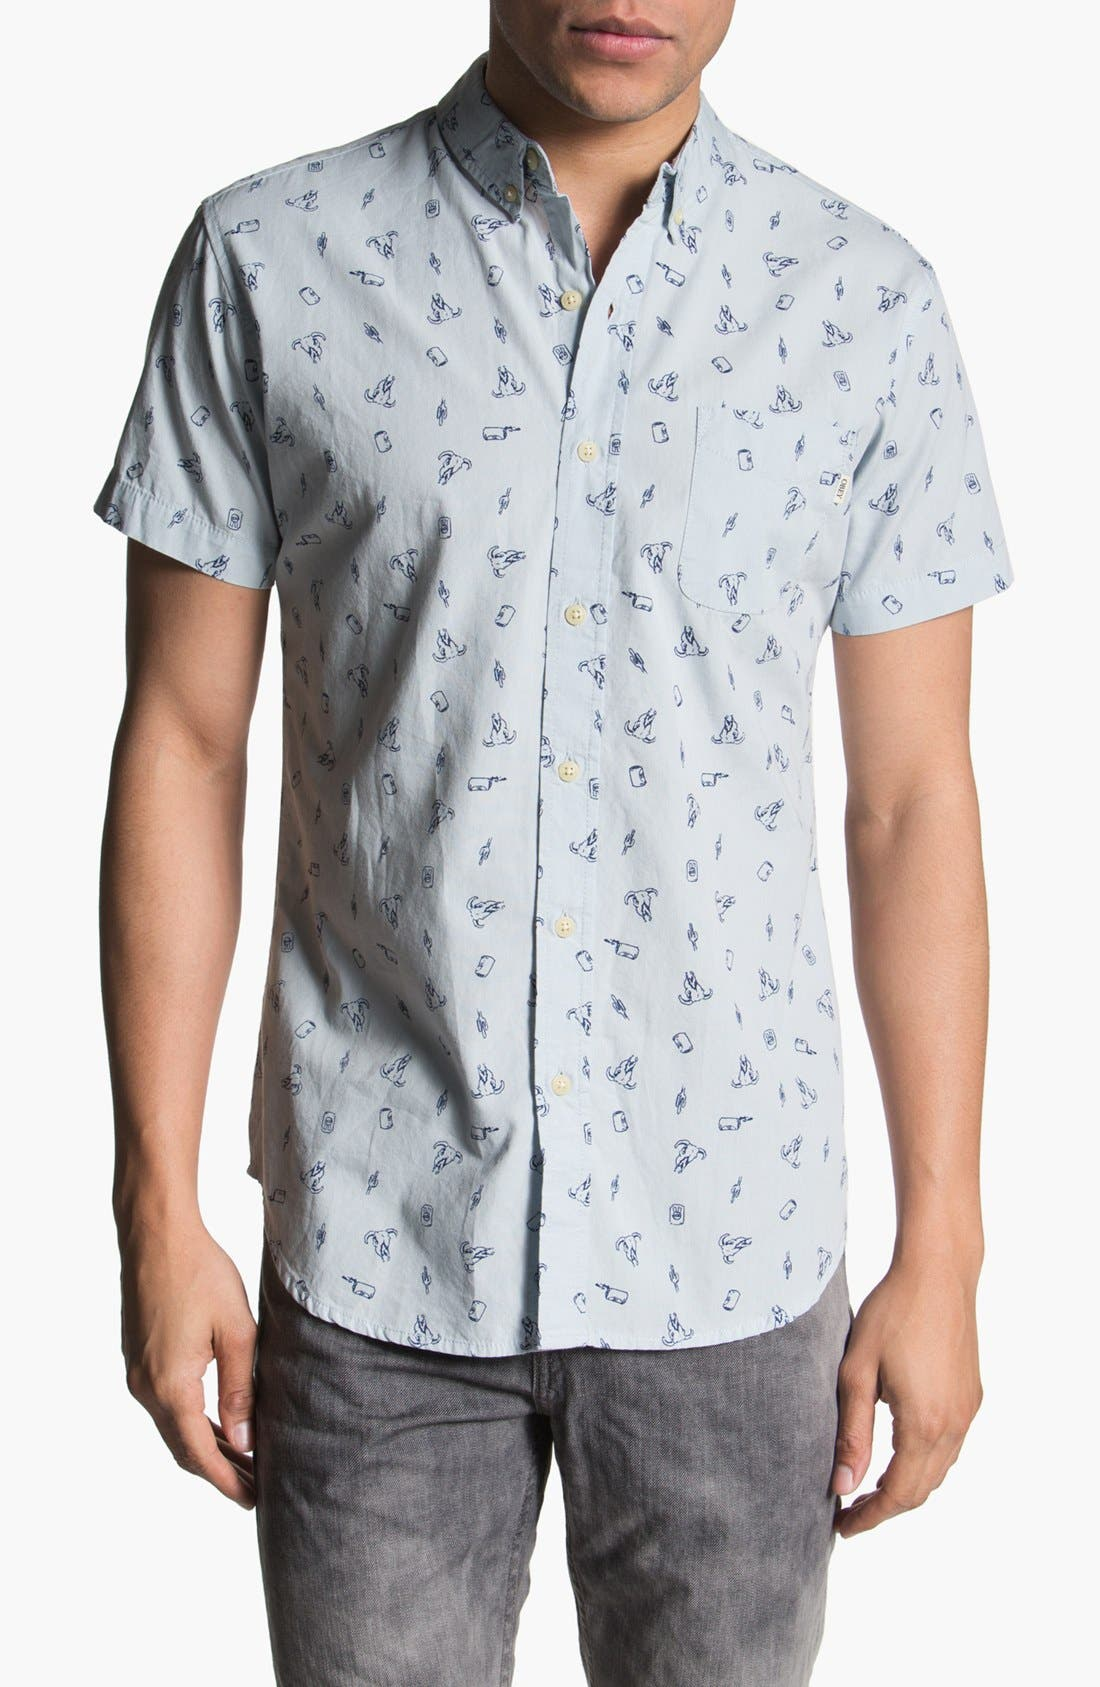 Alternate Image 1 Selected - Obey 'Crossroads' Print Woven Shirt